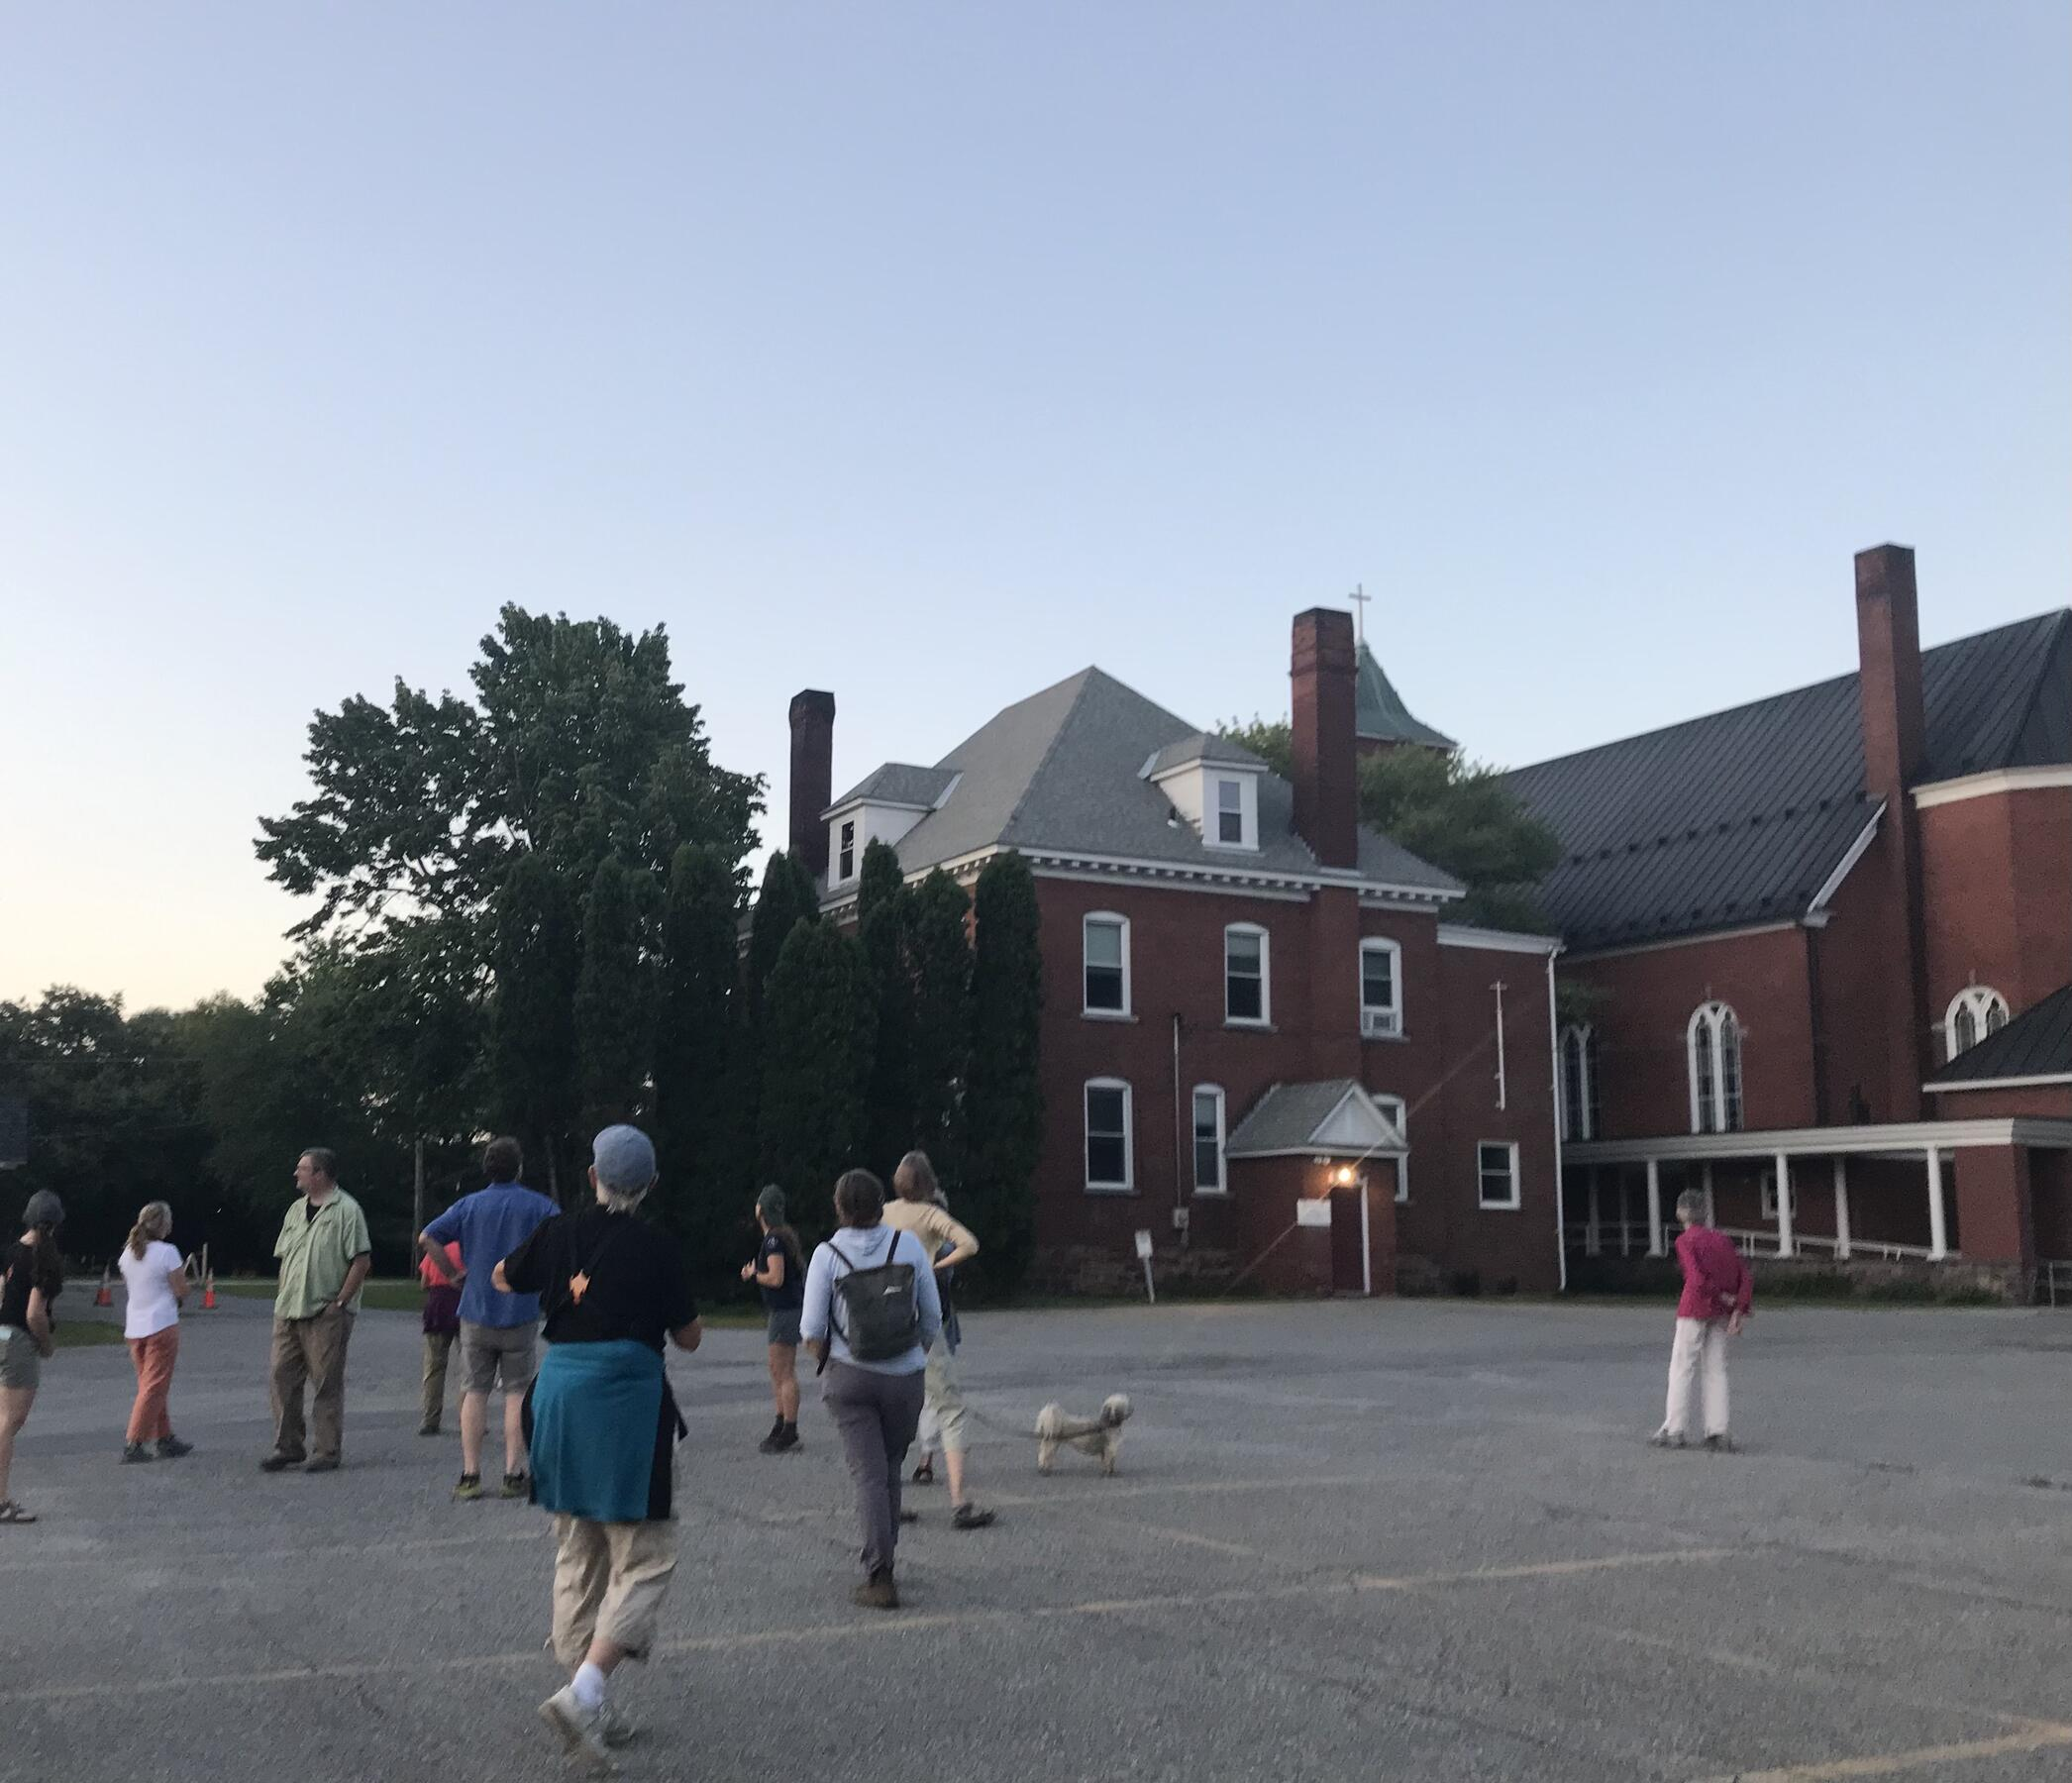 A group of people gather in a church parking lot at sunset to spot chimney swifts returning to their nightly roosting location.